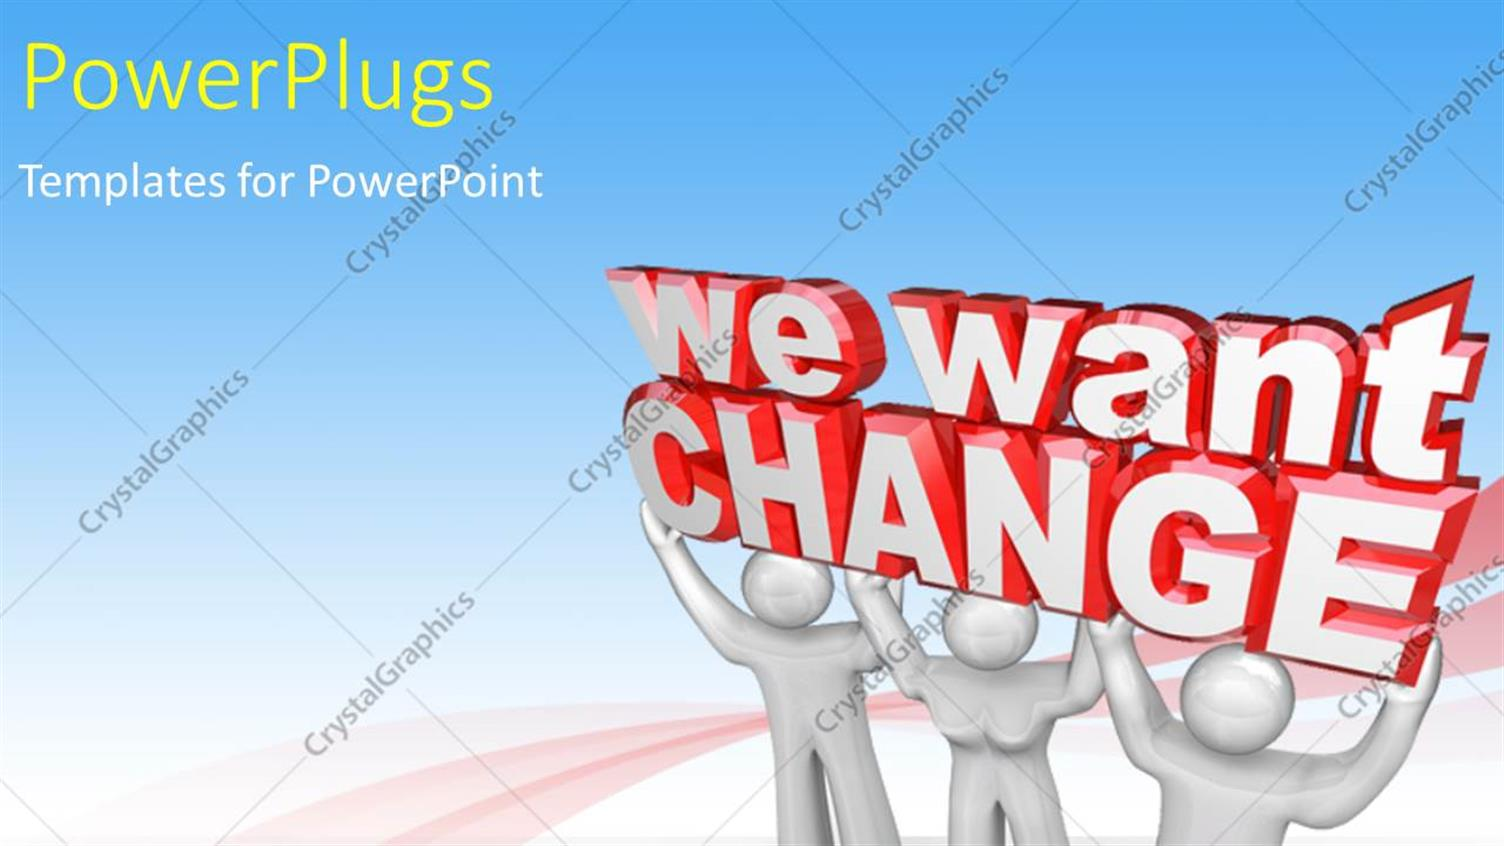 PowerPoint Template Displaying a Number of People Holding the Change Slogan